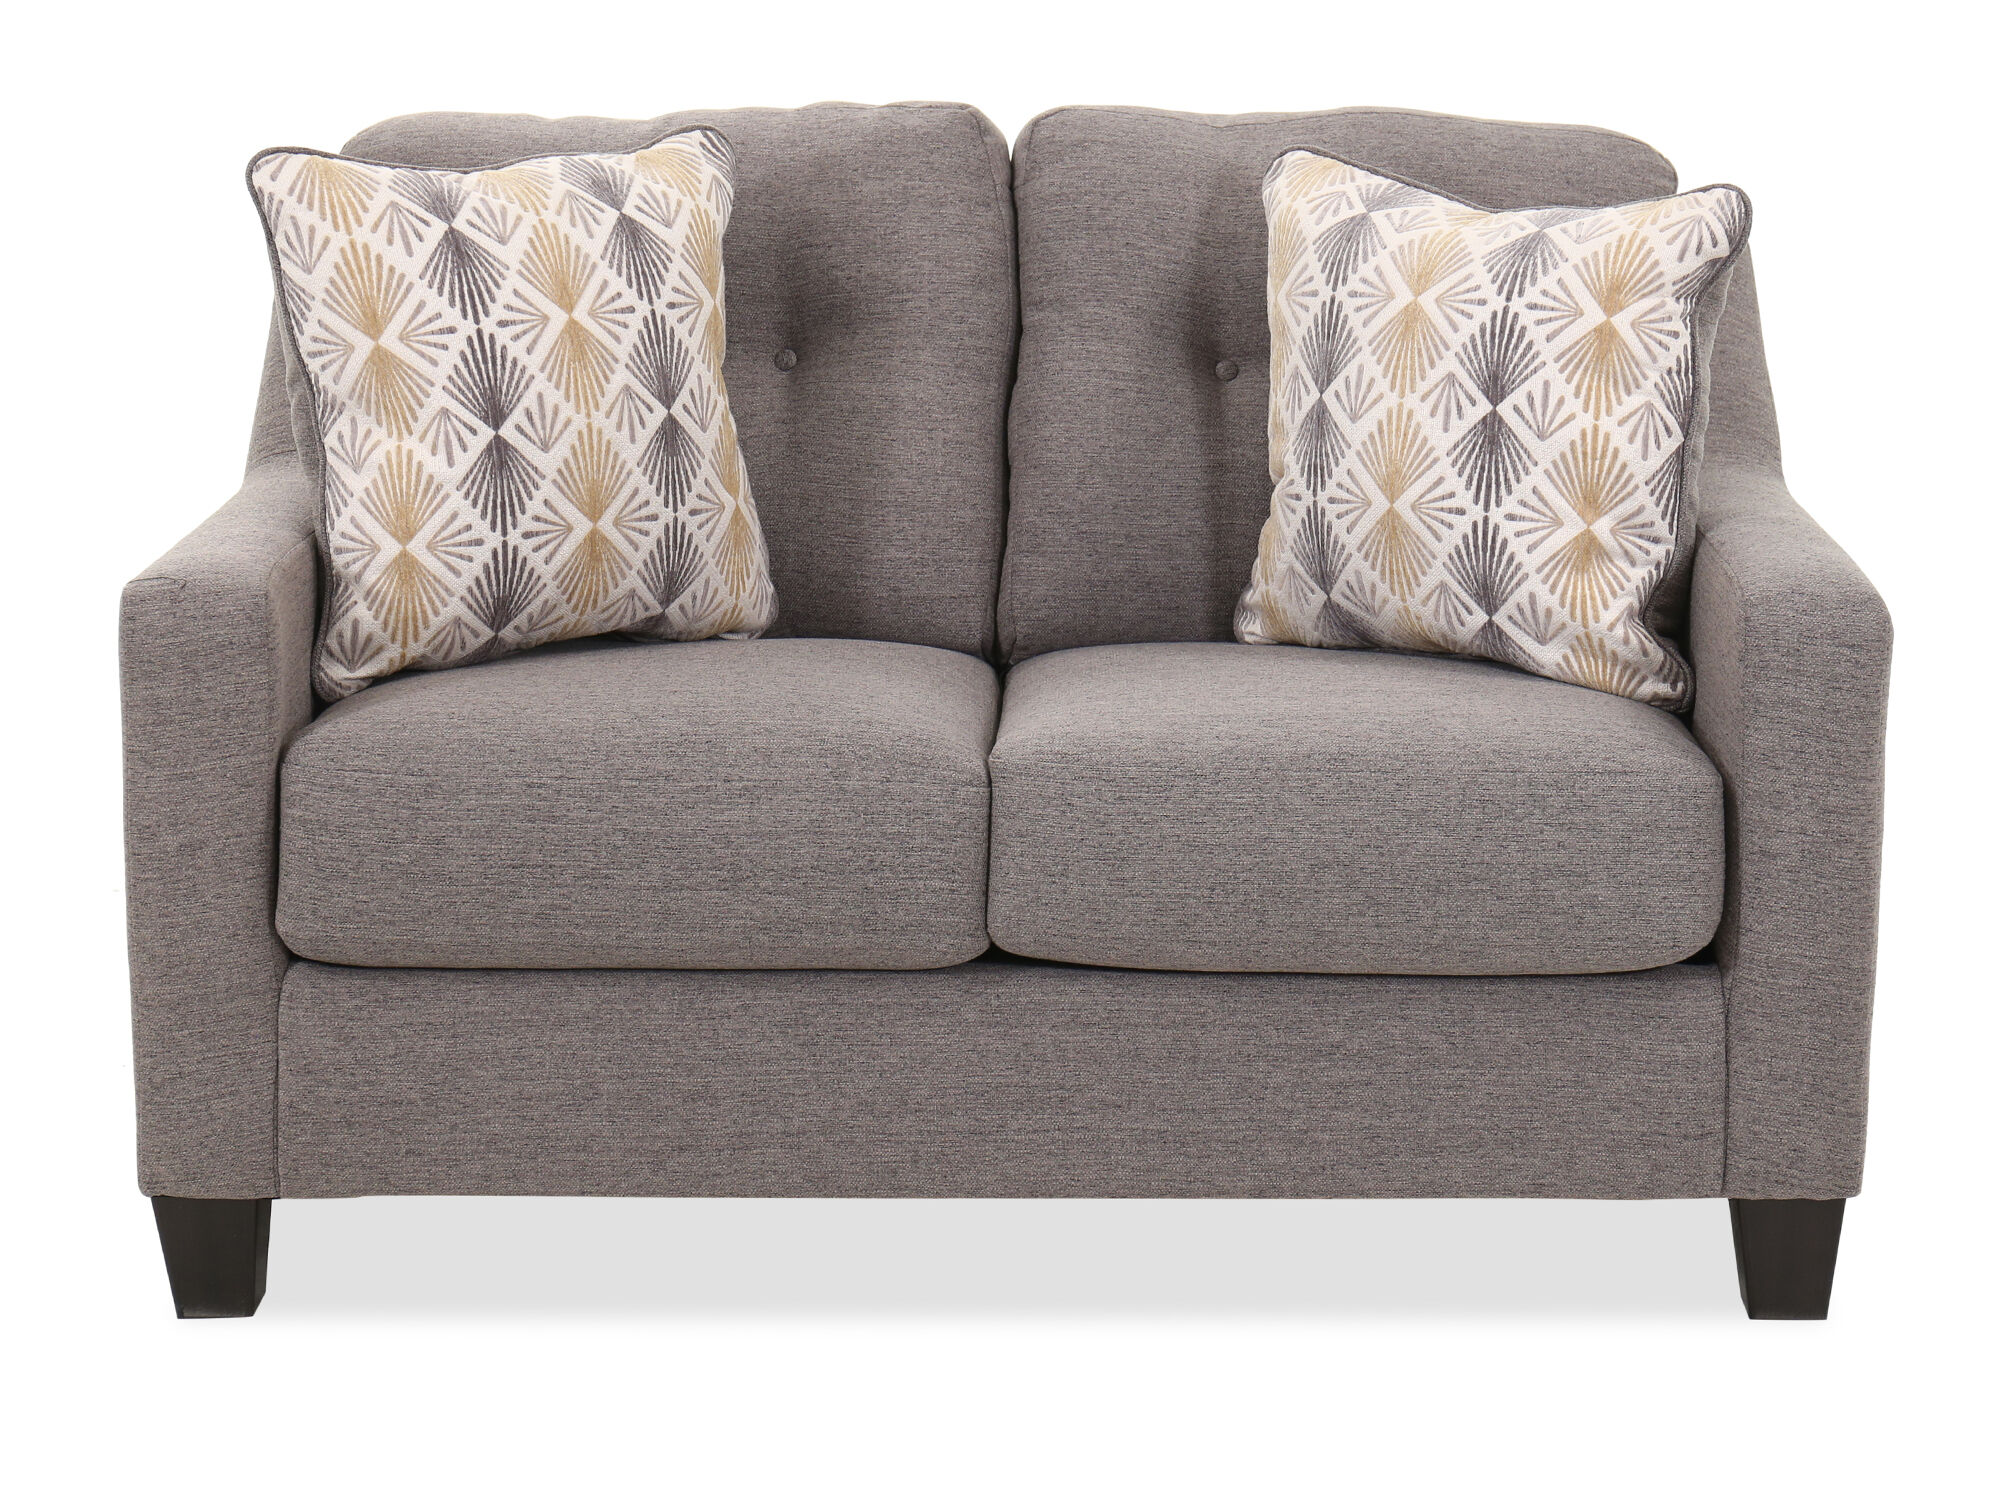 Button Tufted Contemporary 56 Quot Loveseat In Graphite